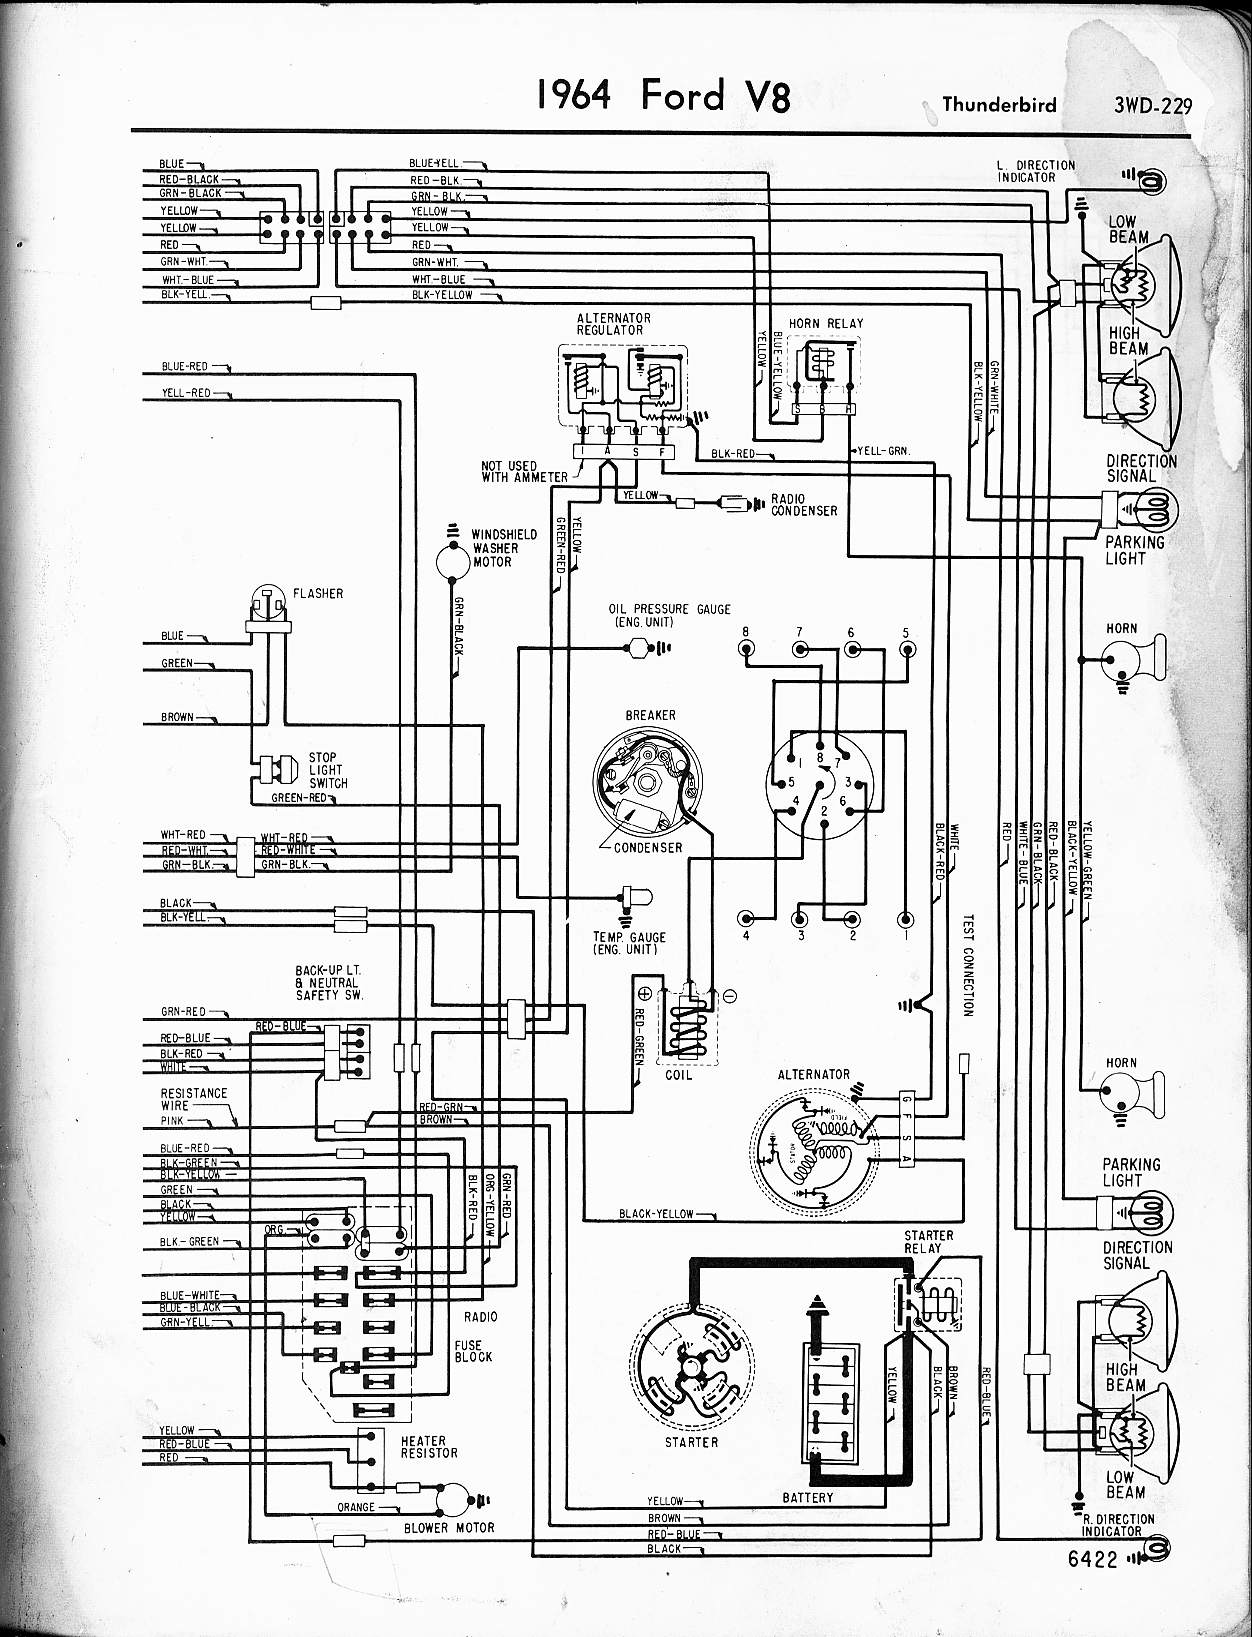 1964 Mustang Fuse Box Diagram Wiring Library 1994 Ford Thunderbird